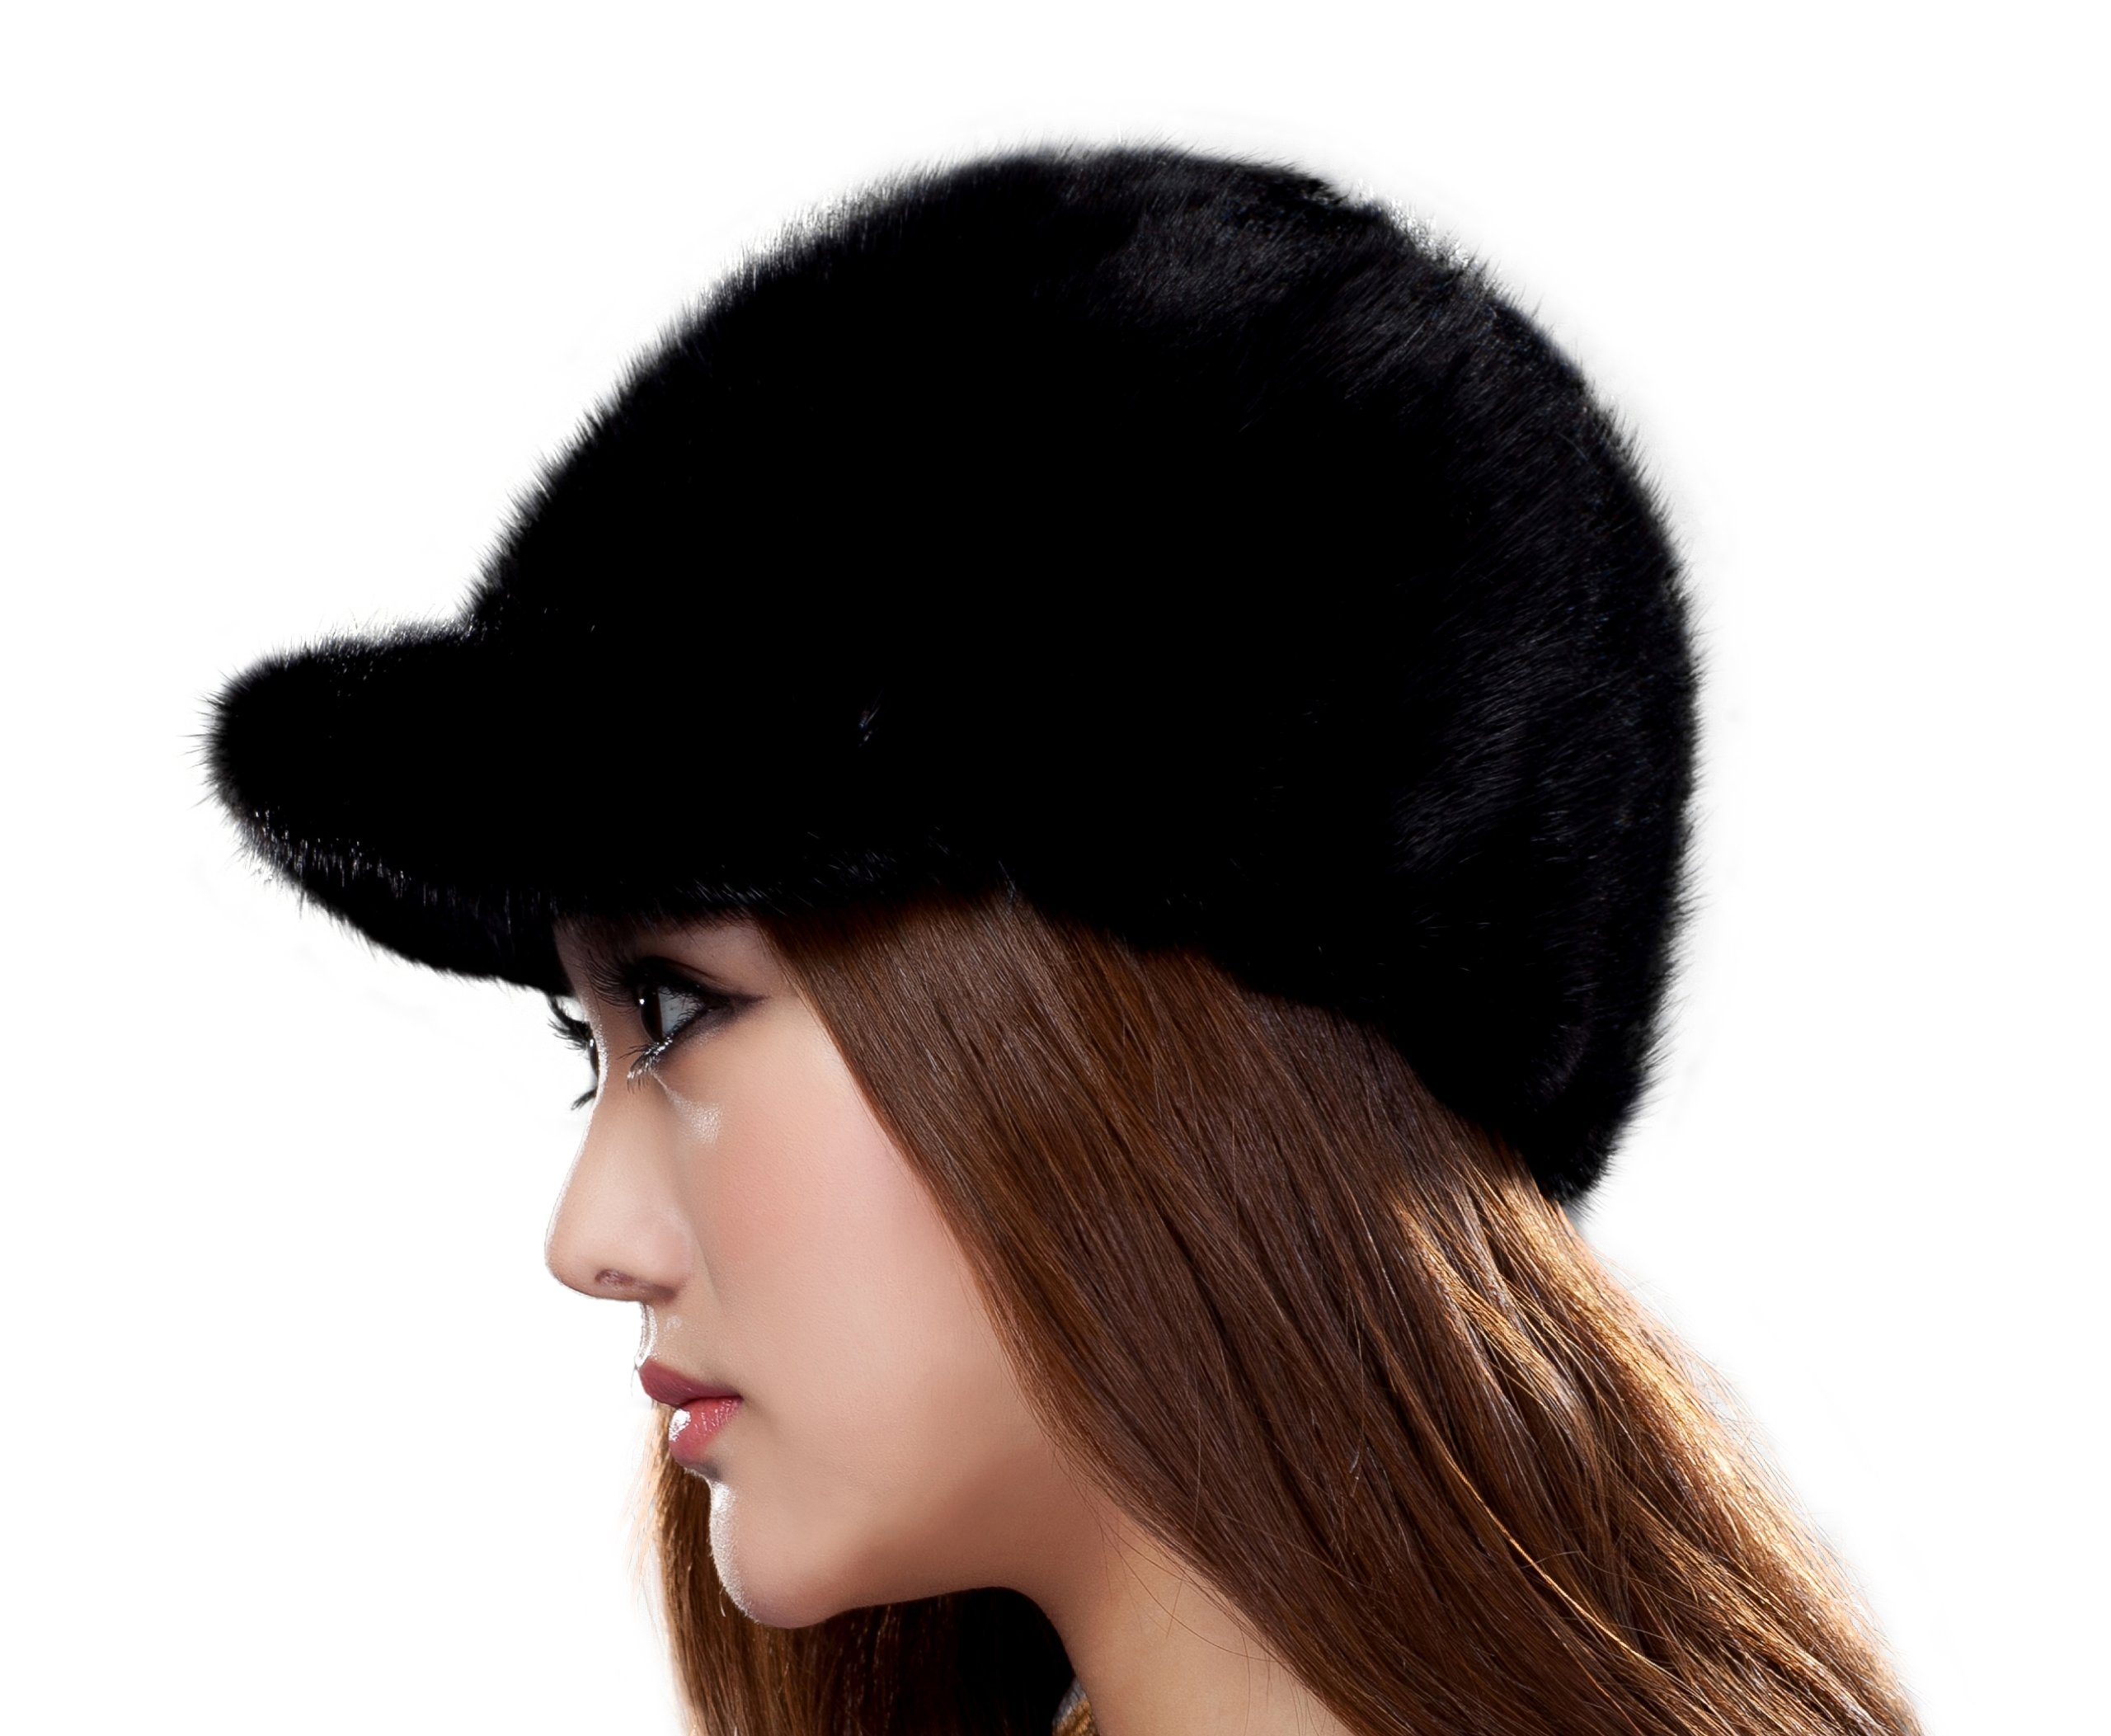 URSFUR Women's Mink Fur Newsboy Caps Casquette Hunting Cap SD30 (Coffee) by URSFUR